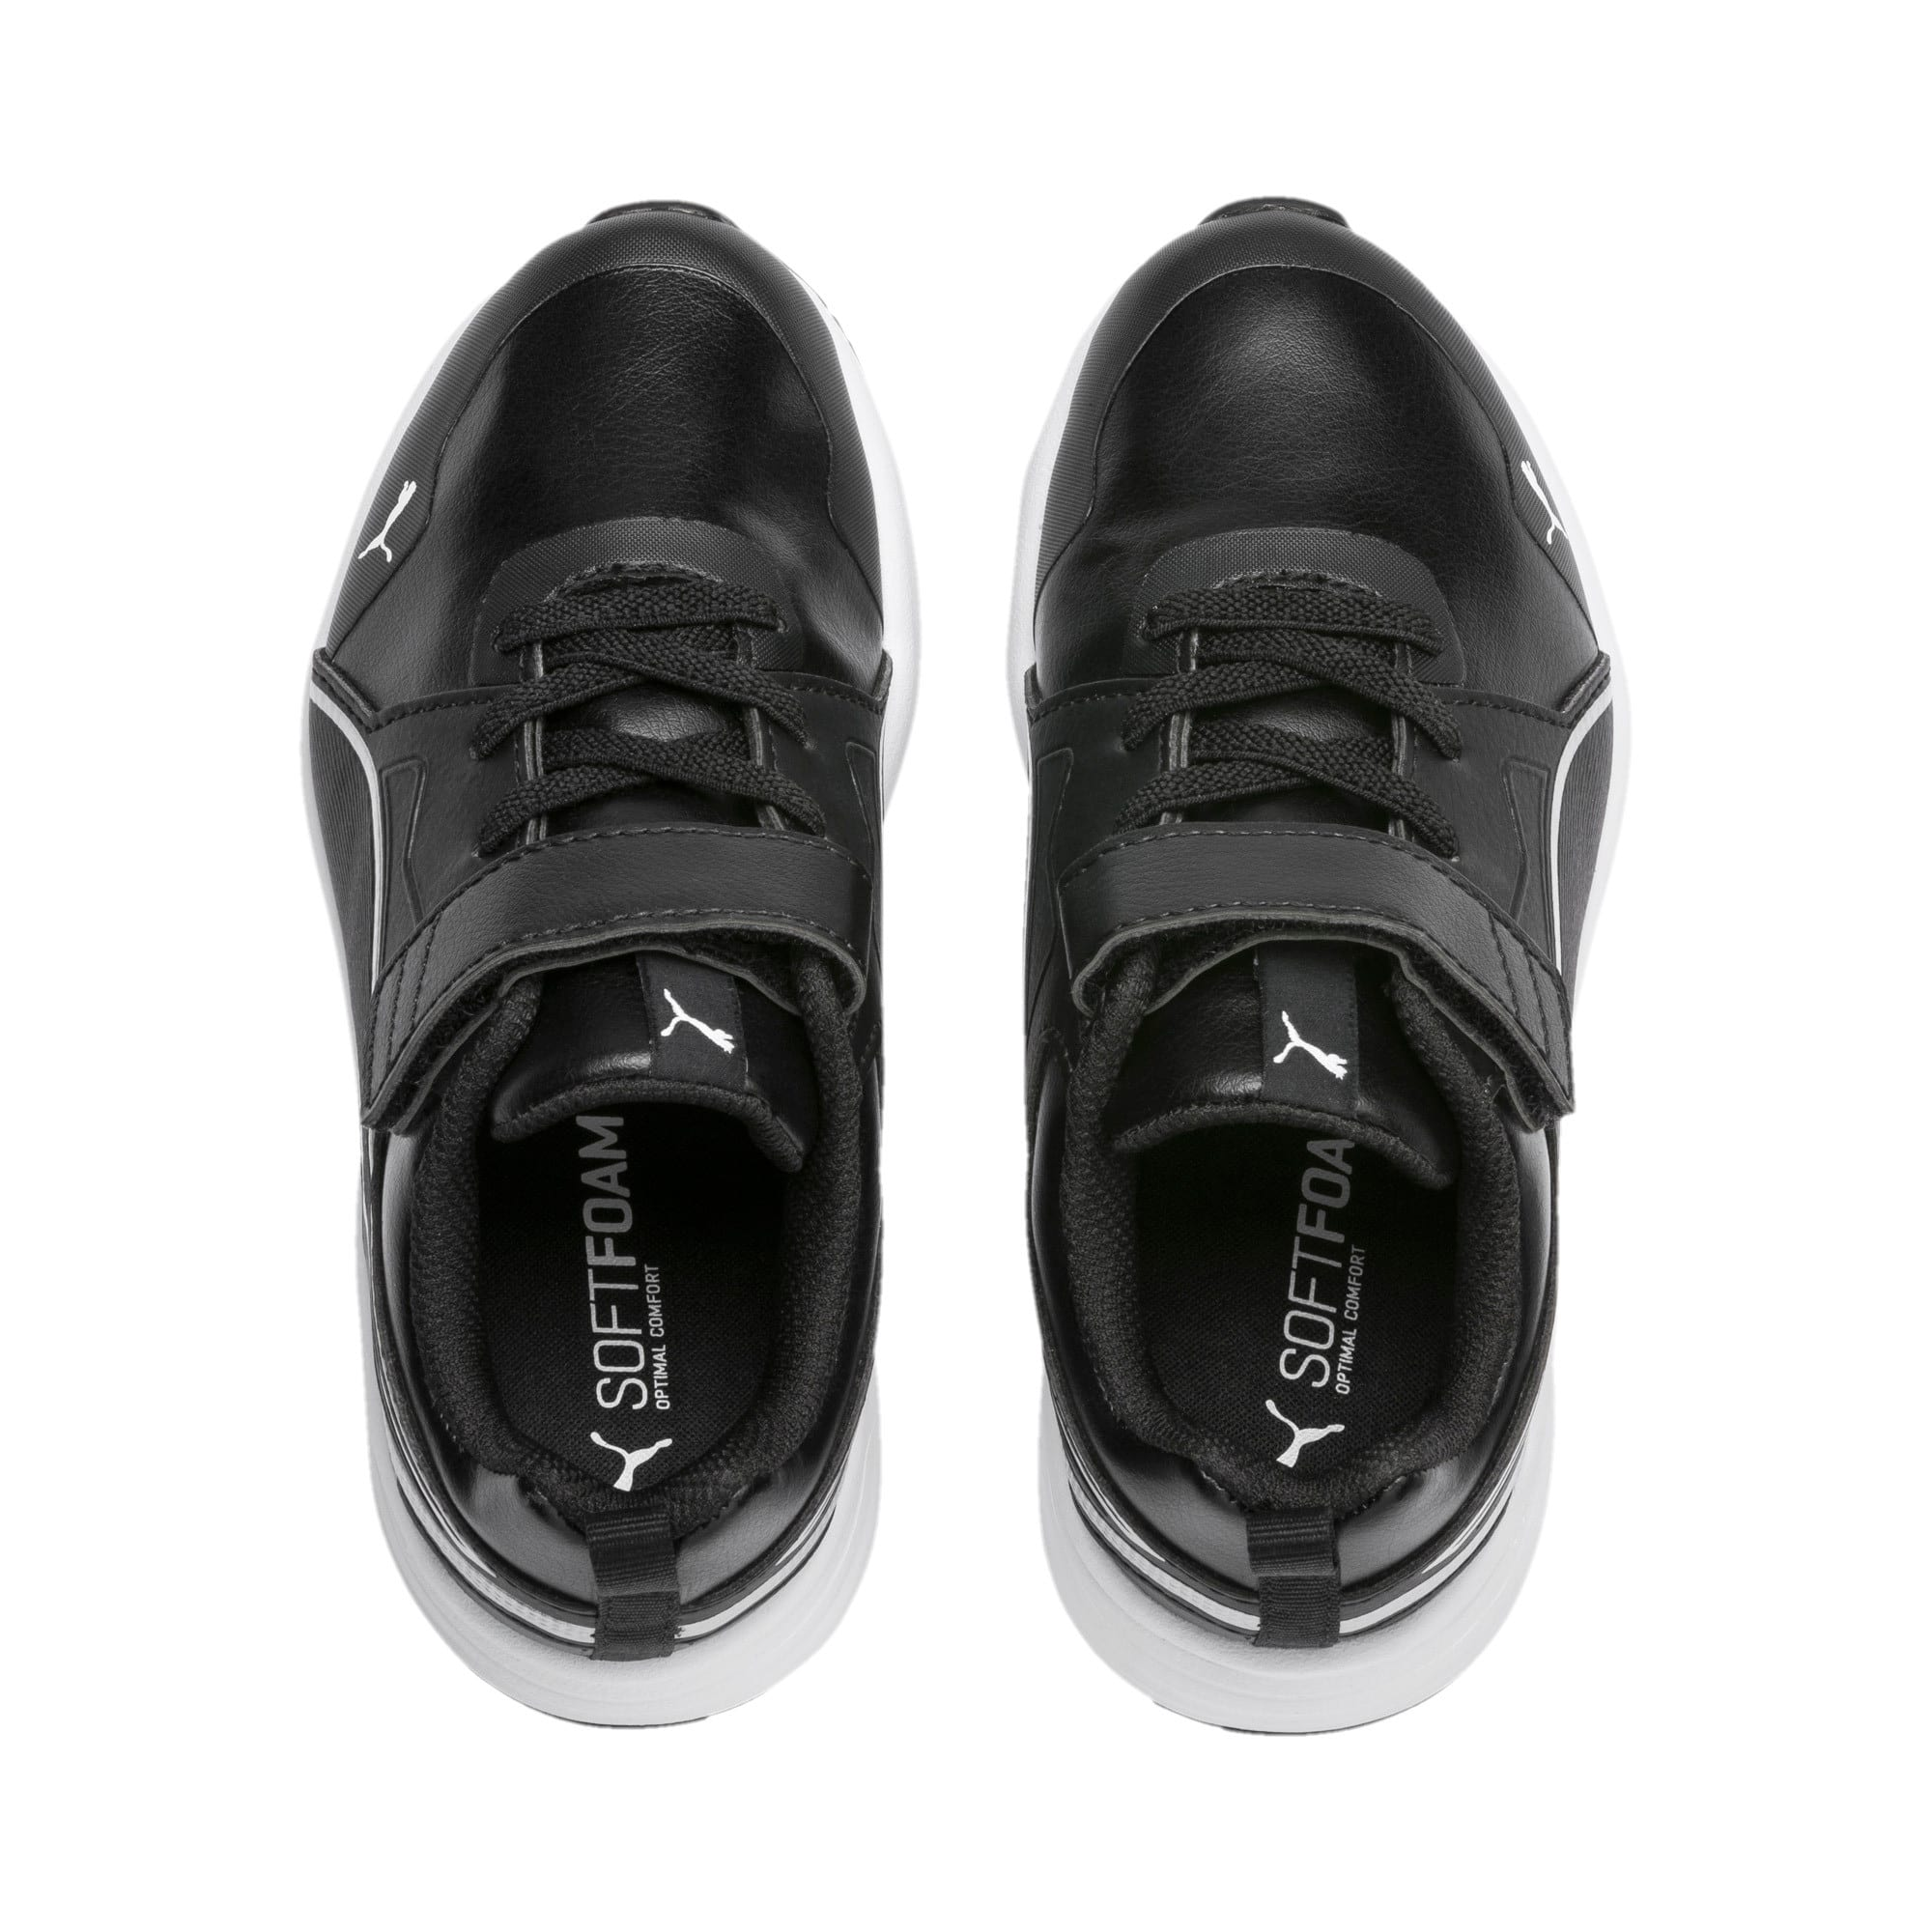 Thumbnail 6 of Pure Jogger SL Kids' Trainers, Puma Black-Puma Silver-White, medium-IND